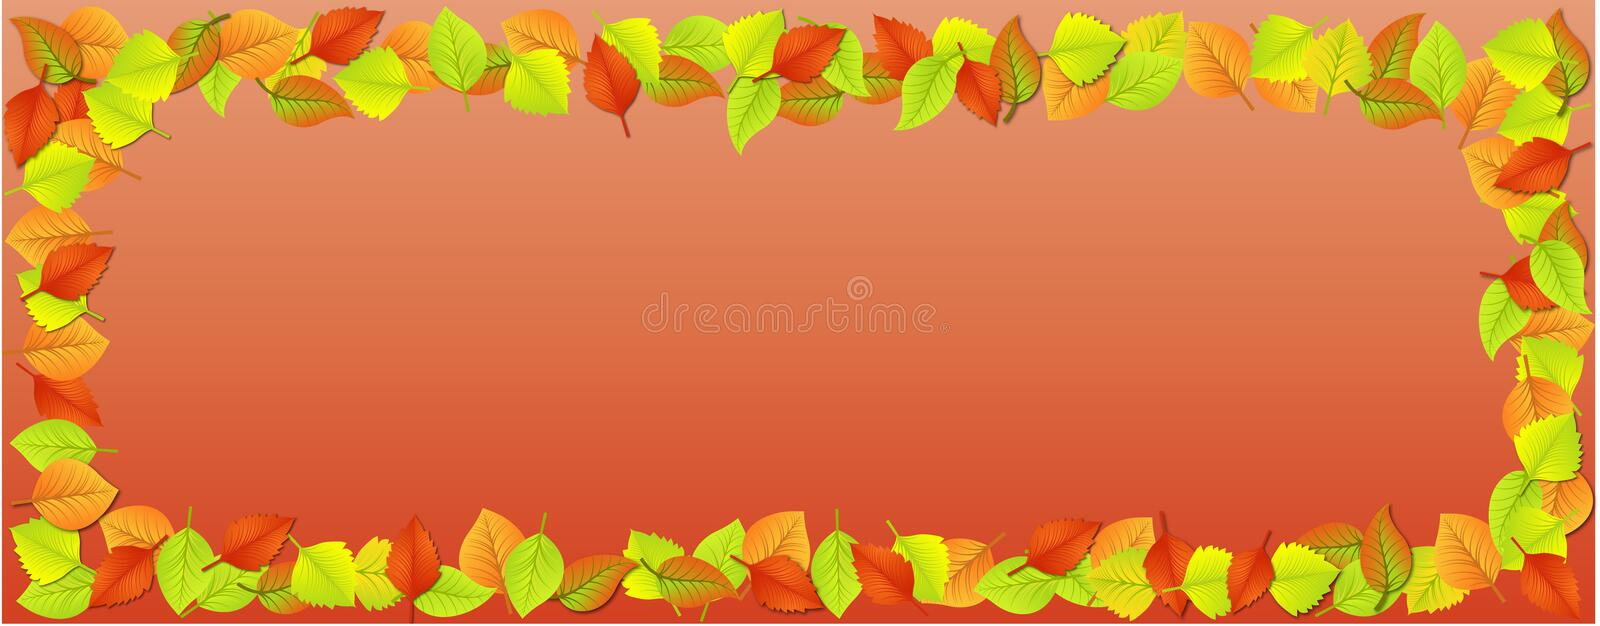 Design f?r illustration f?r h?stbladvektor fallande leaves f?r fall Autumn Falling Leaves som isoleras på orange röda BackgroundB stock illustrationer